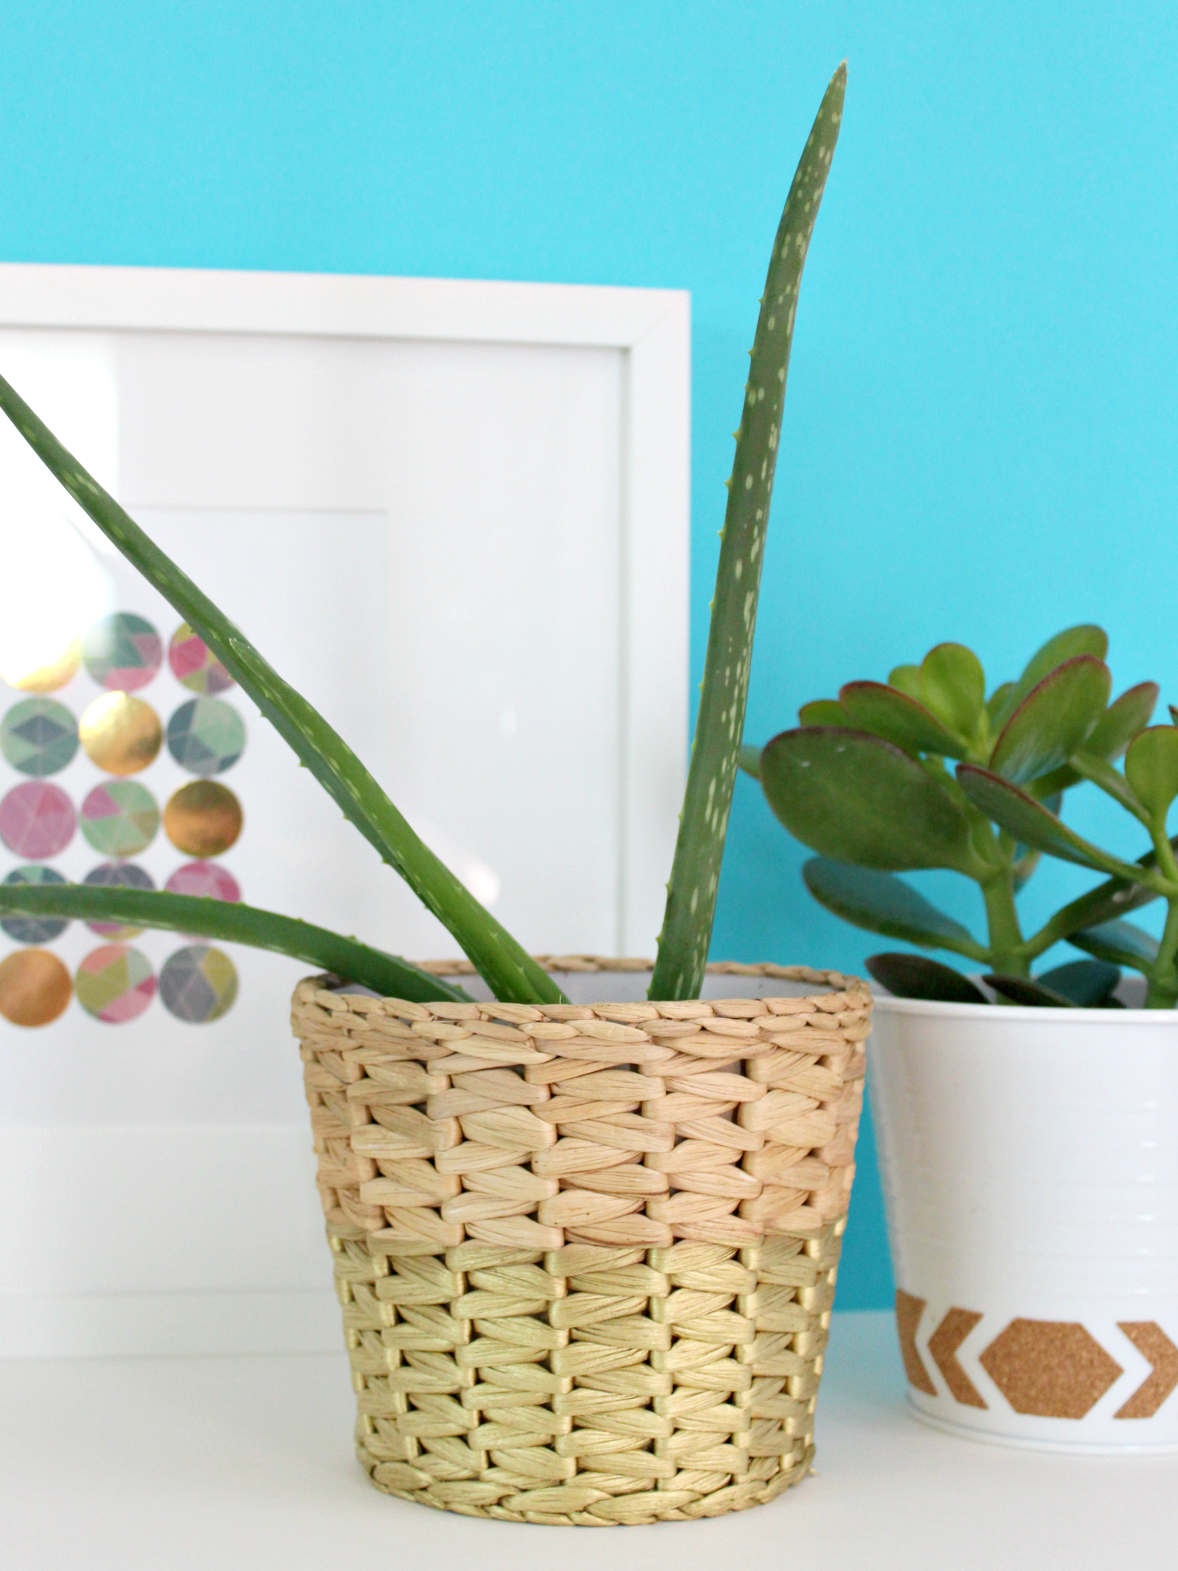 IKEA HACK: QUICK PLANTER MAKEOVER WITH GOLD SPRAY PAINT